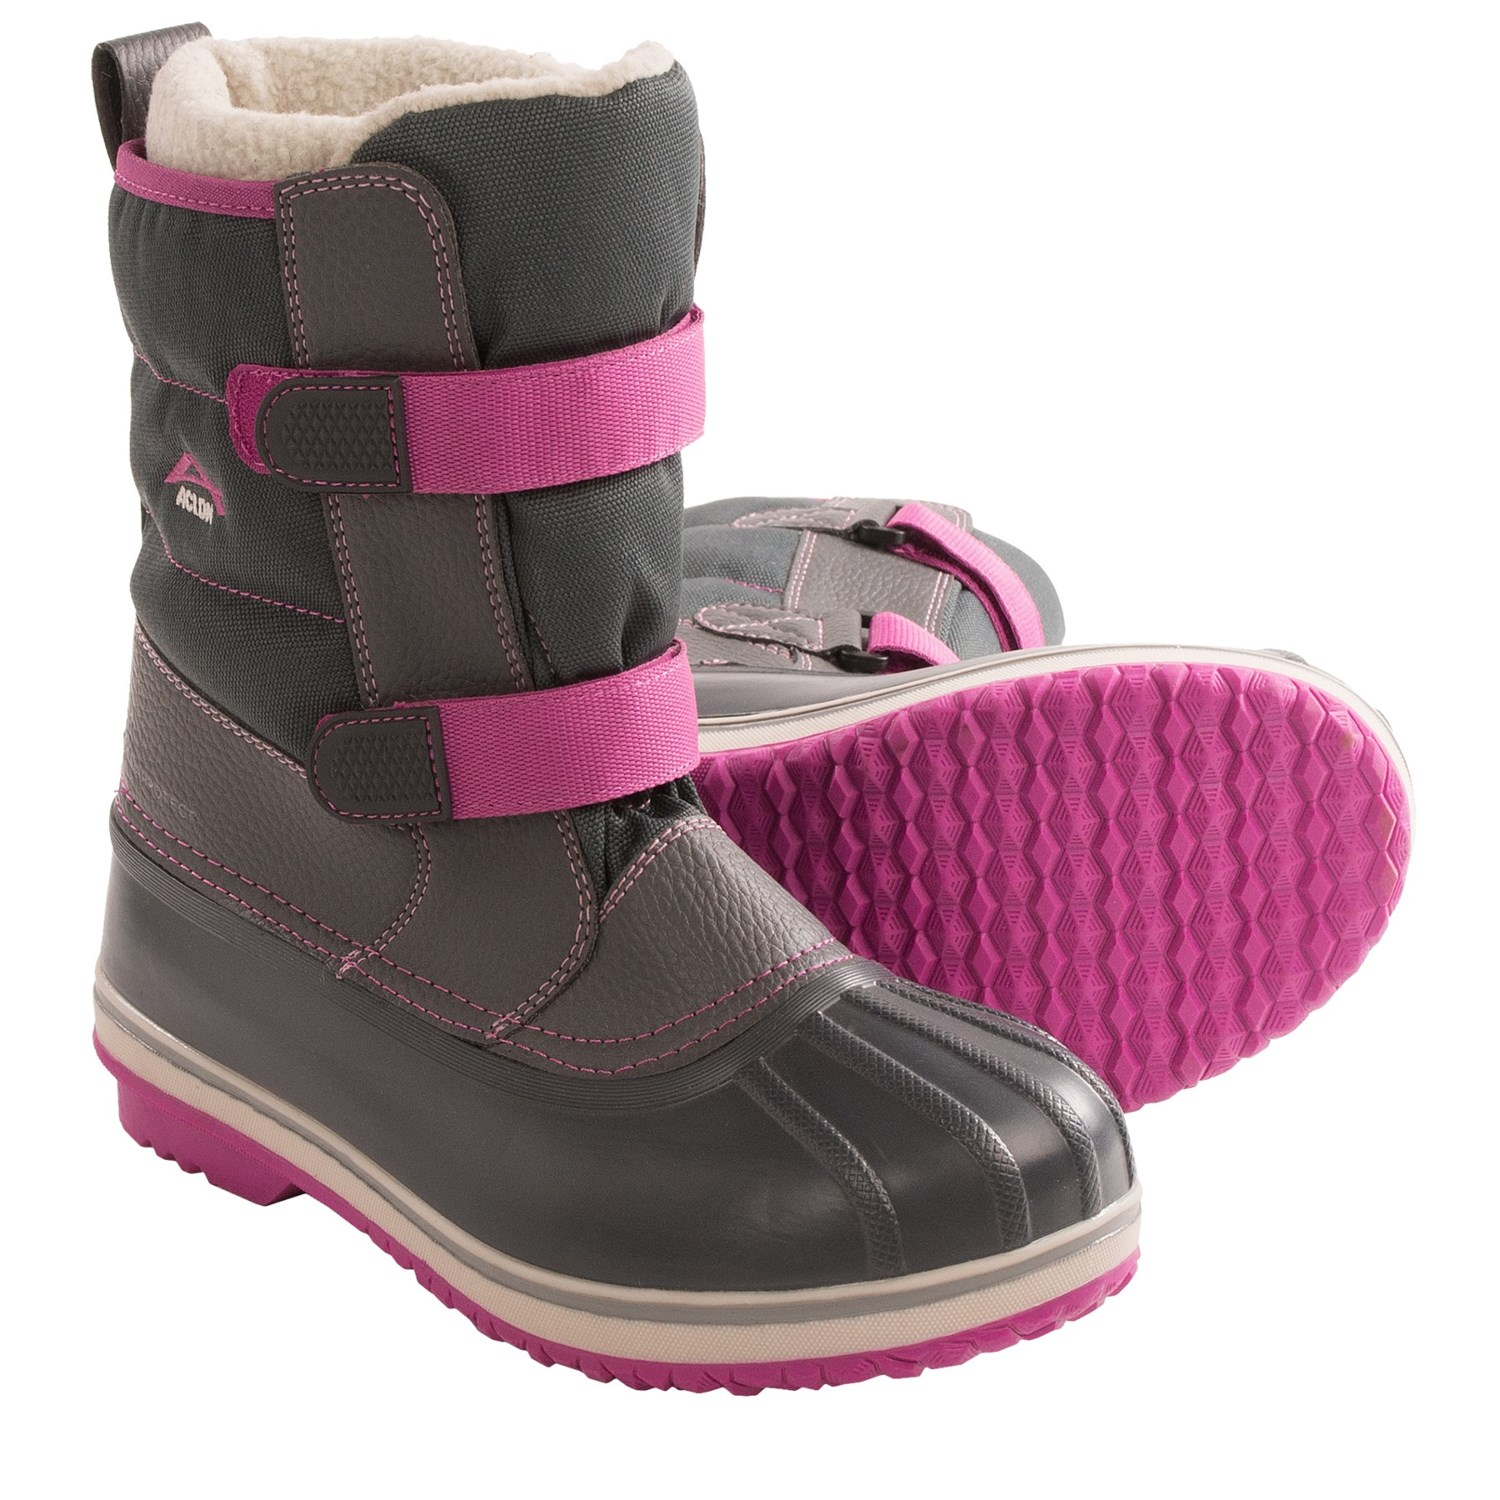 Kids Military Boots Explore the variety of kids military boots below. We offer a wide selection of quality army and military combat boots for kids, including kids black leather boots, jungle boots for kids, and kids desert boots.